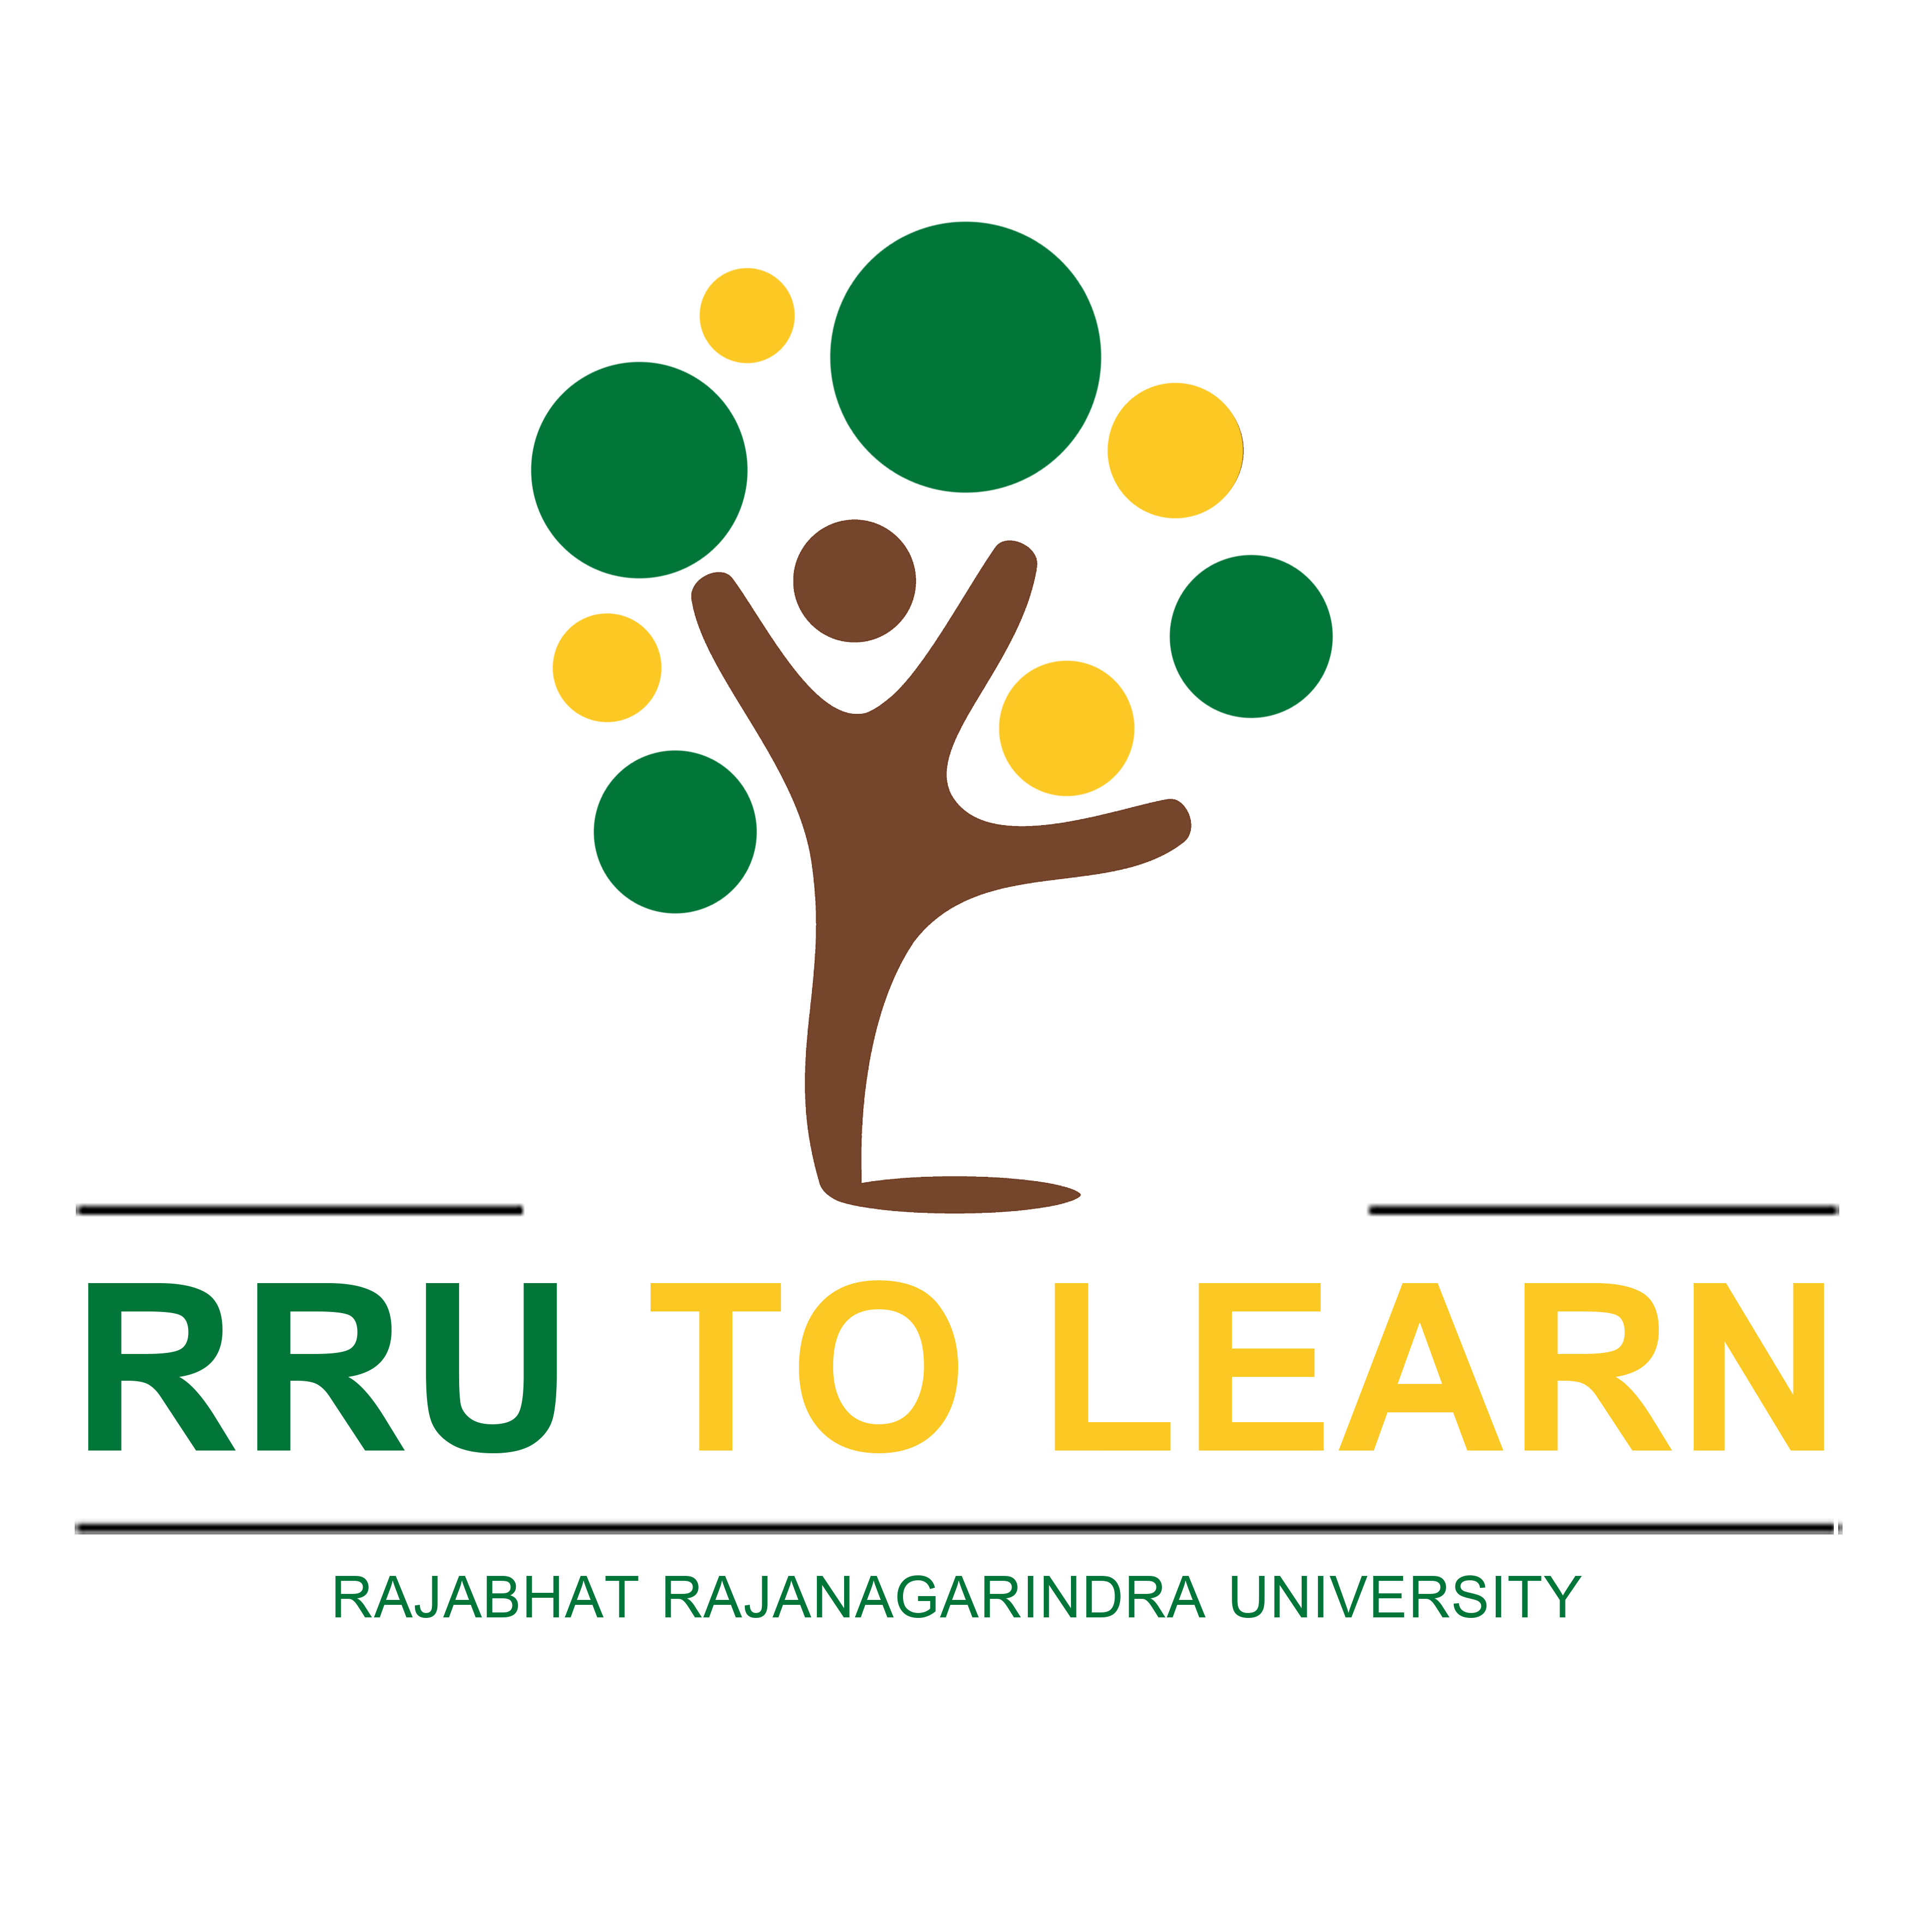 RRU to Learn